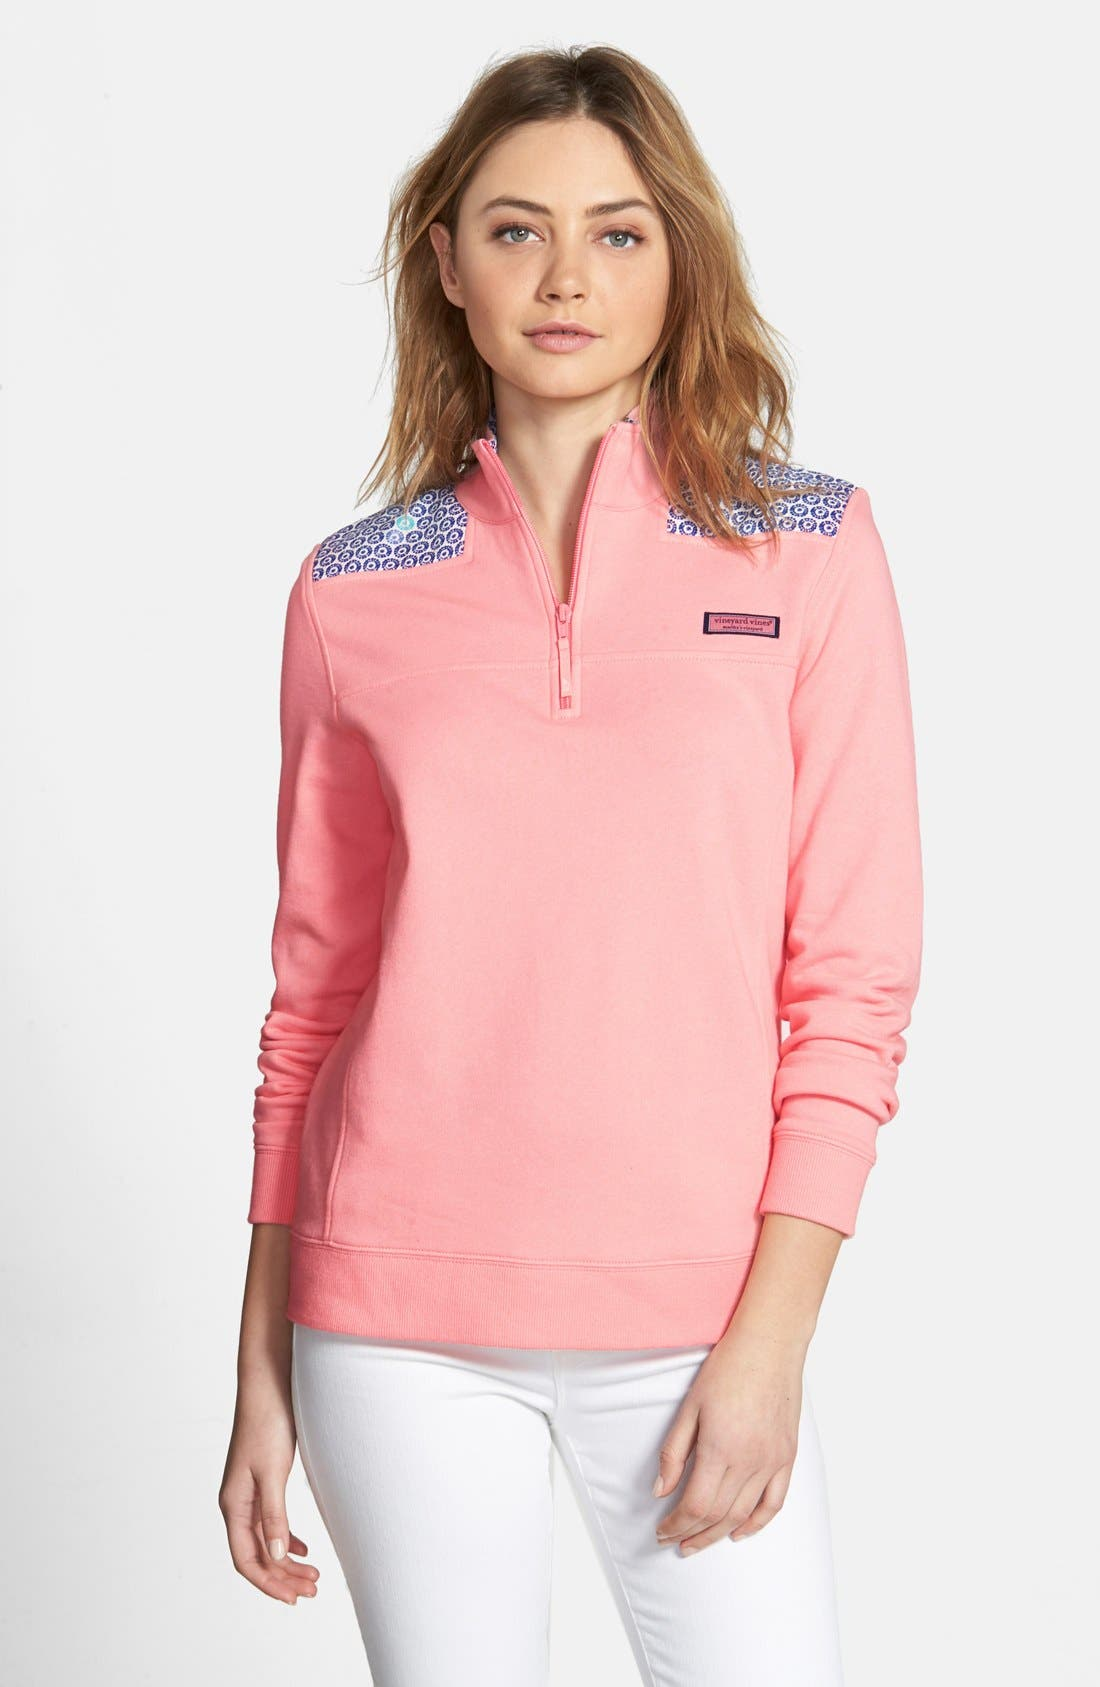 Alternate Image 1 Selected - Vineyard Vines 'Shep' Batik Dot Sweatshirt